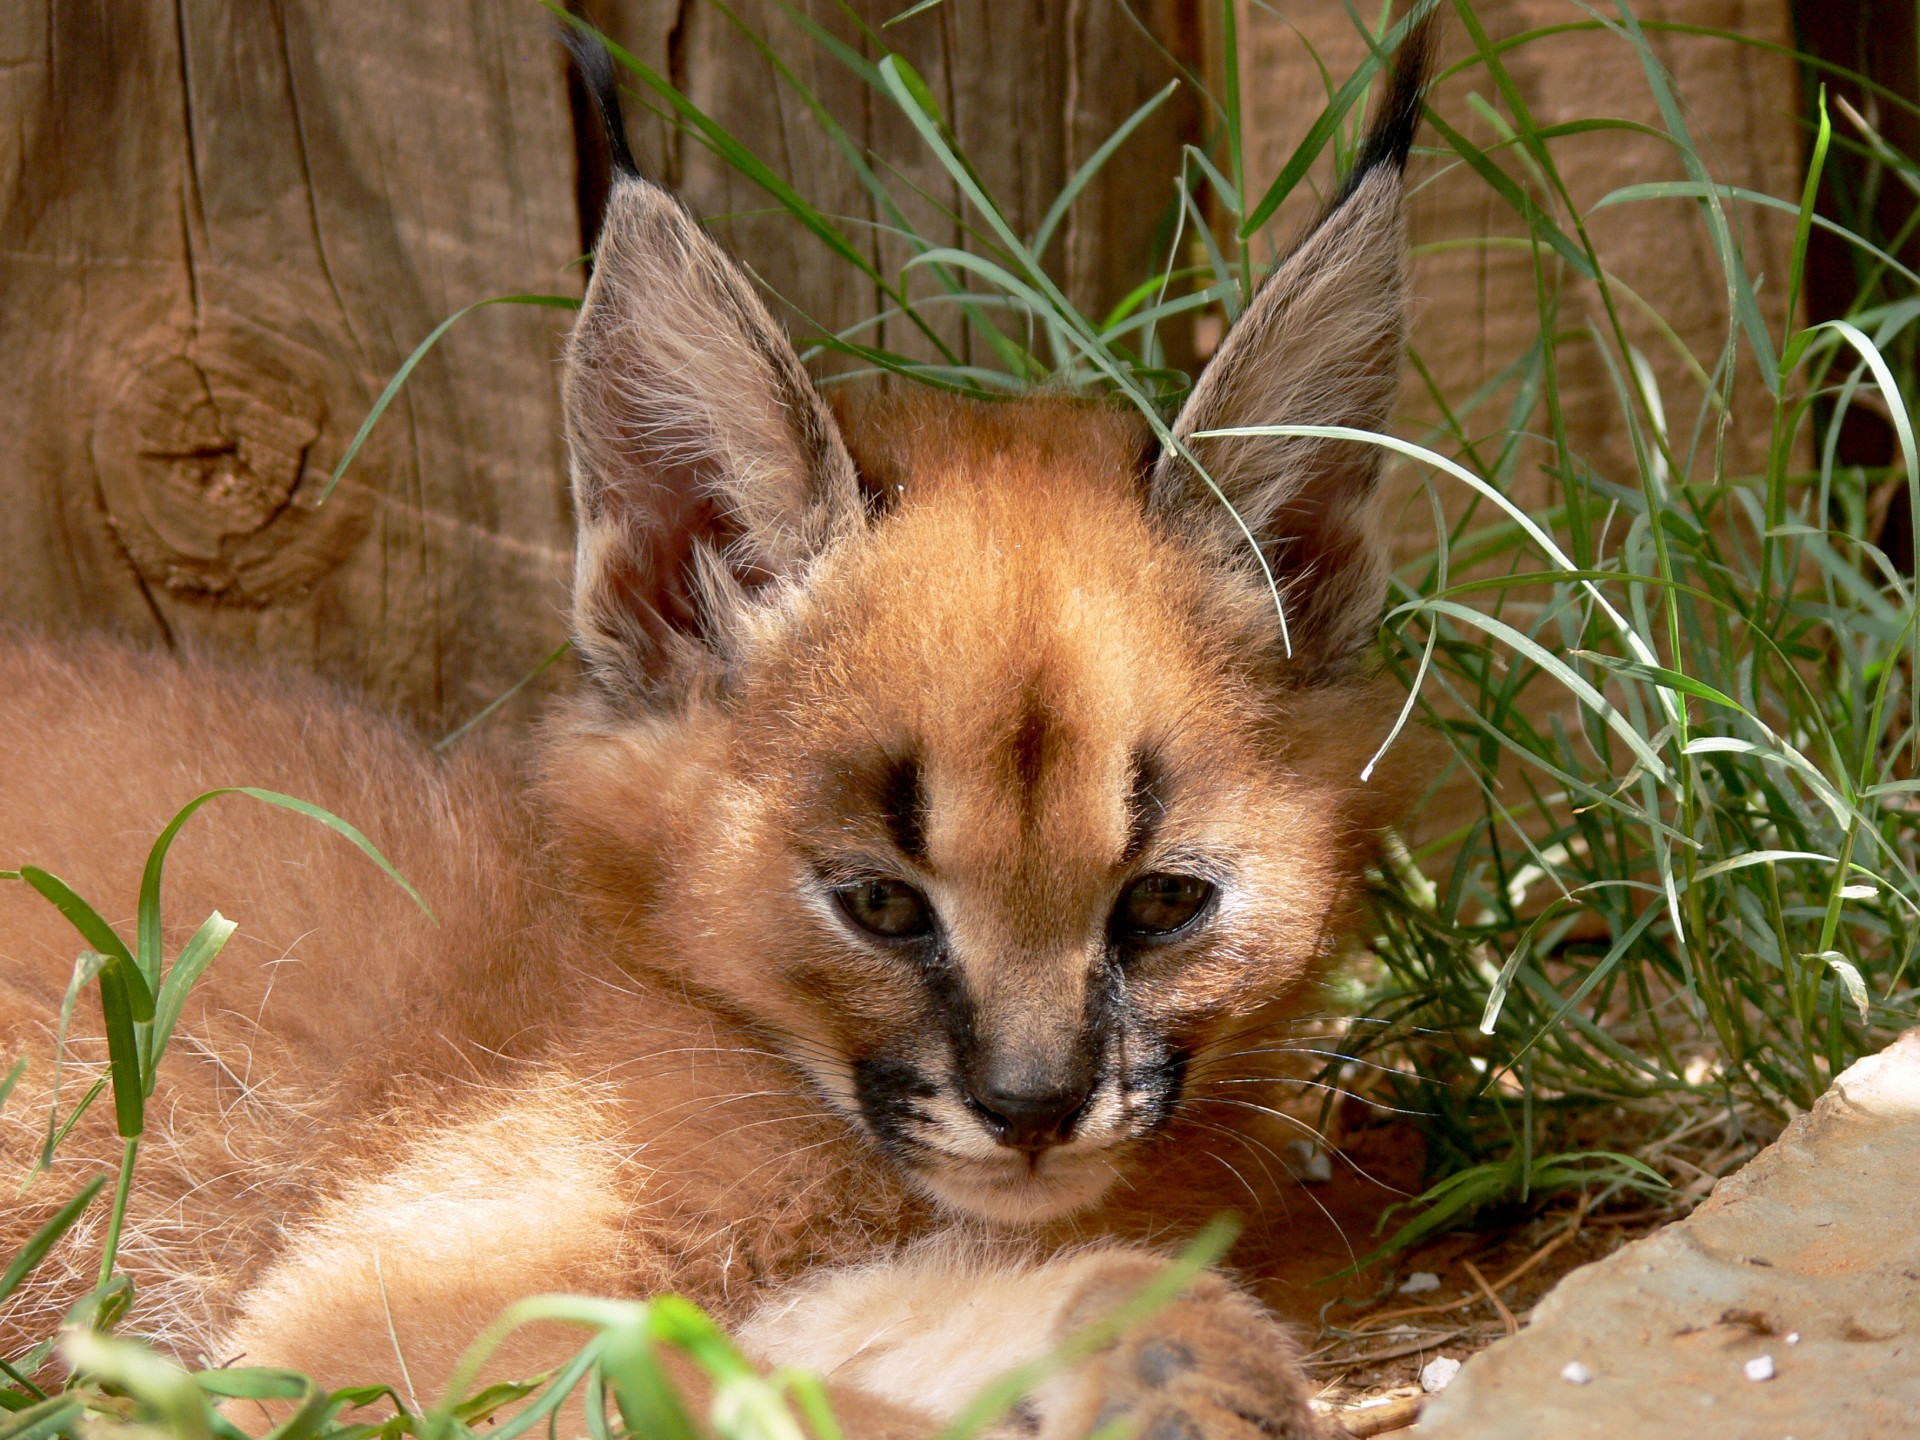 Cute Furry Wallpaper Caracal Kitten Free Stock Photo Public Domain Pictures